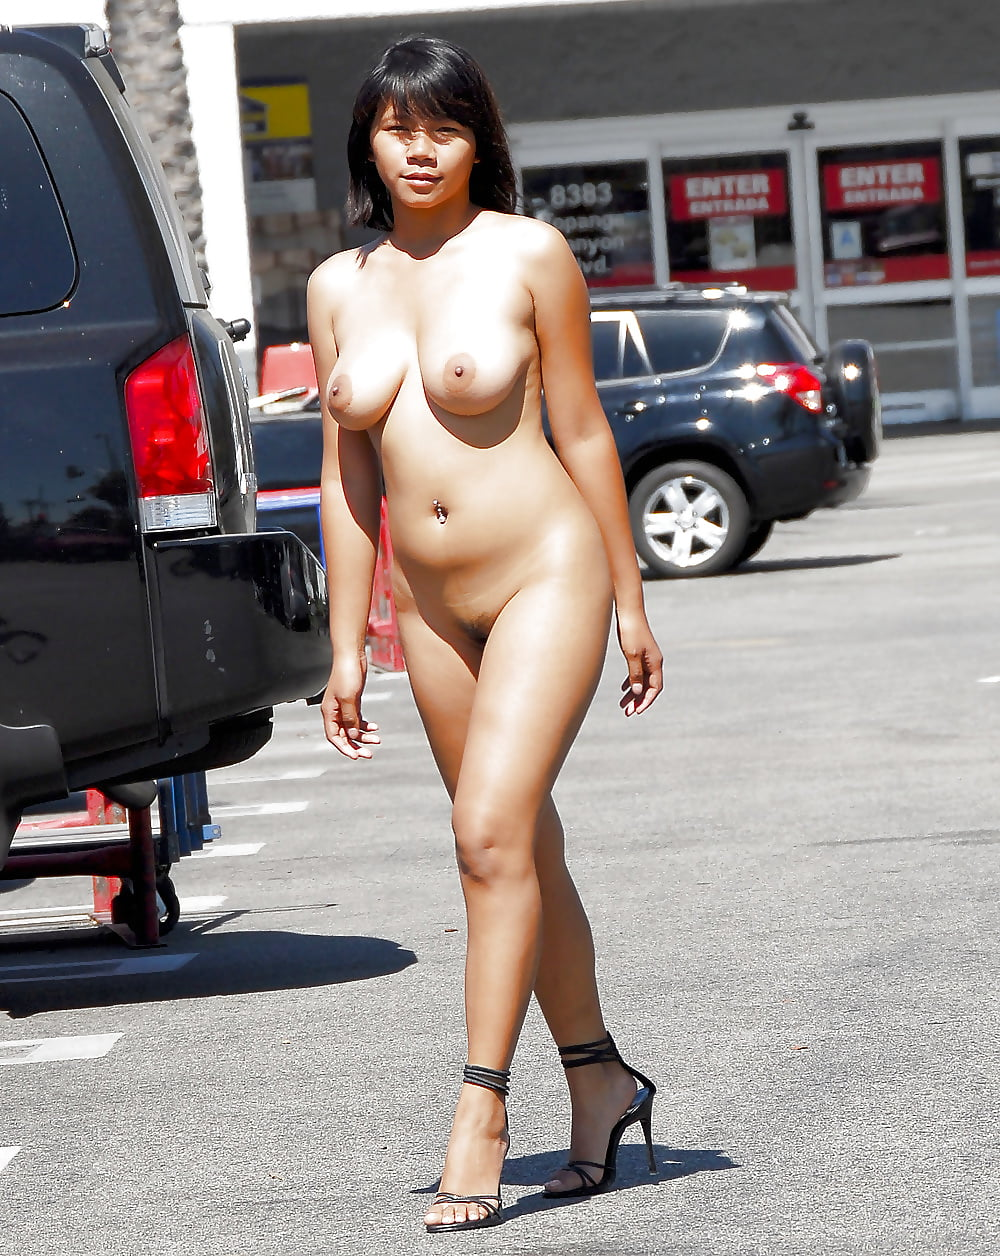 And marge nude chinese expose public